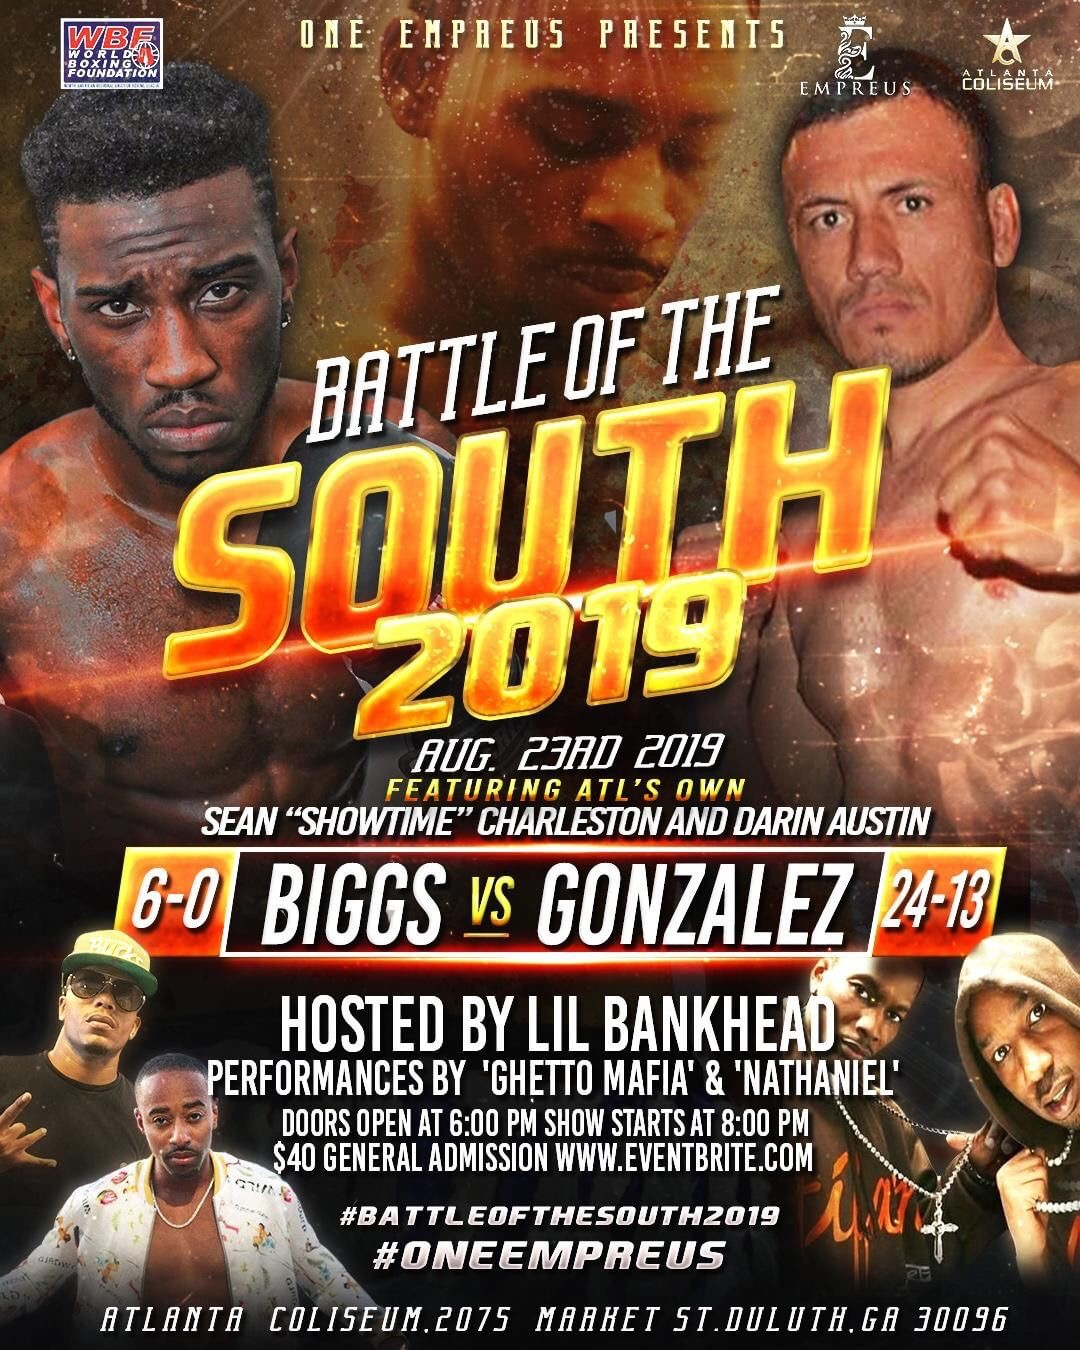 Battle of the South a ten fight card Friday August 23 2019